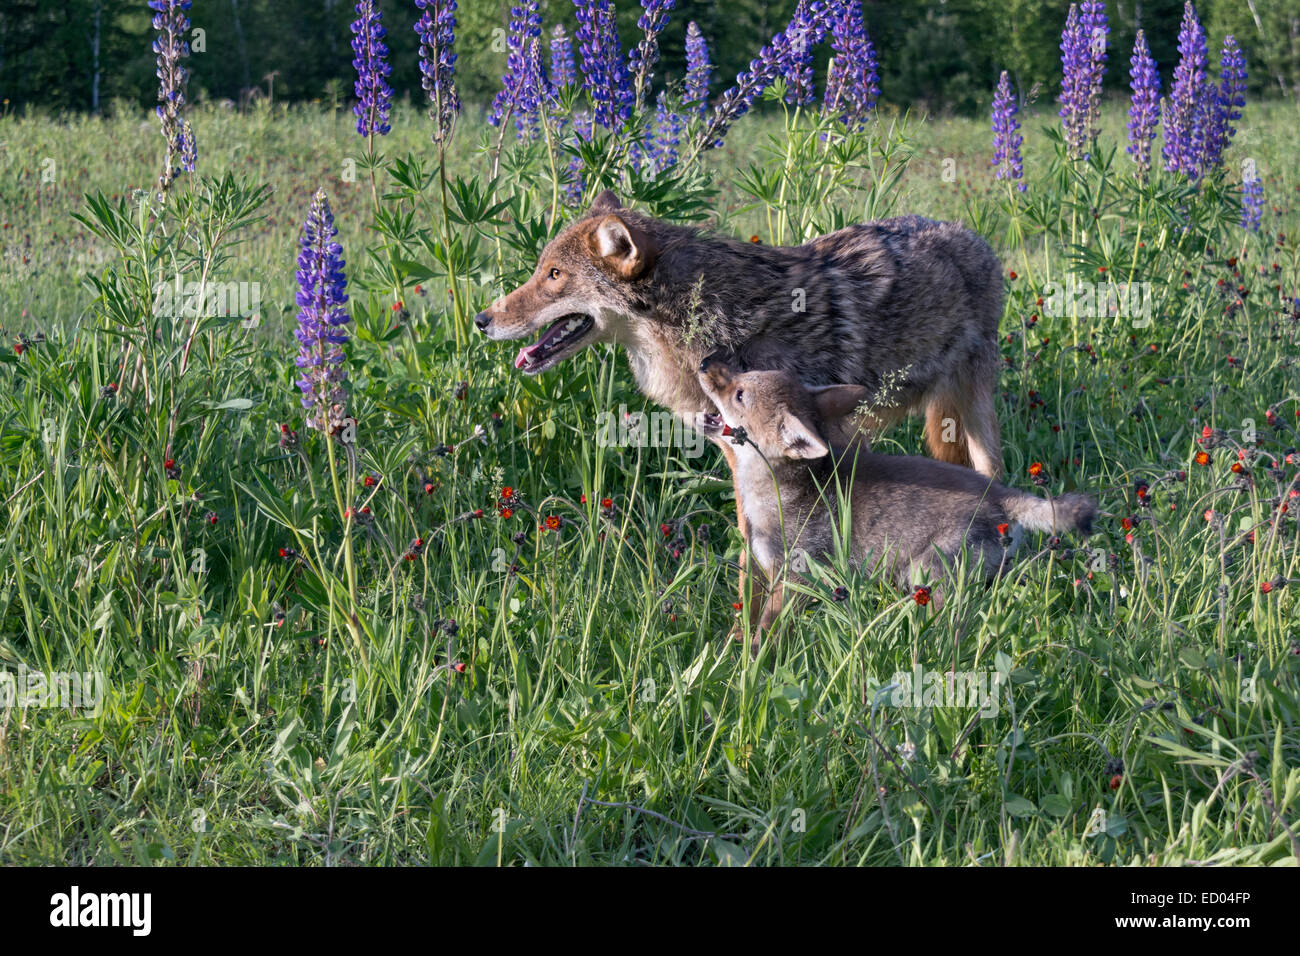 Interactions between coyote and pup, near Sandstone, Minnesota, USA - Stock Image